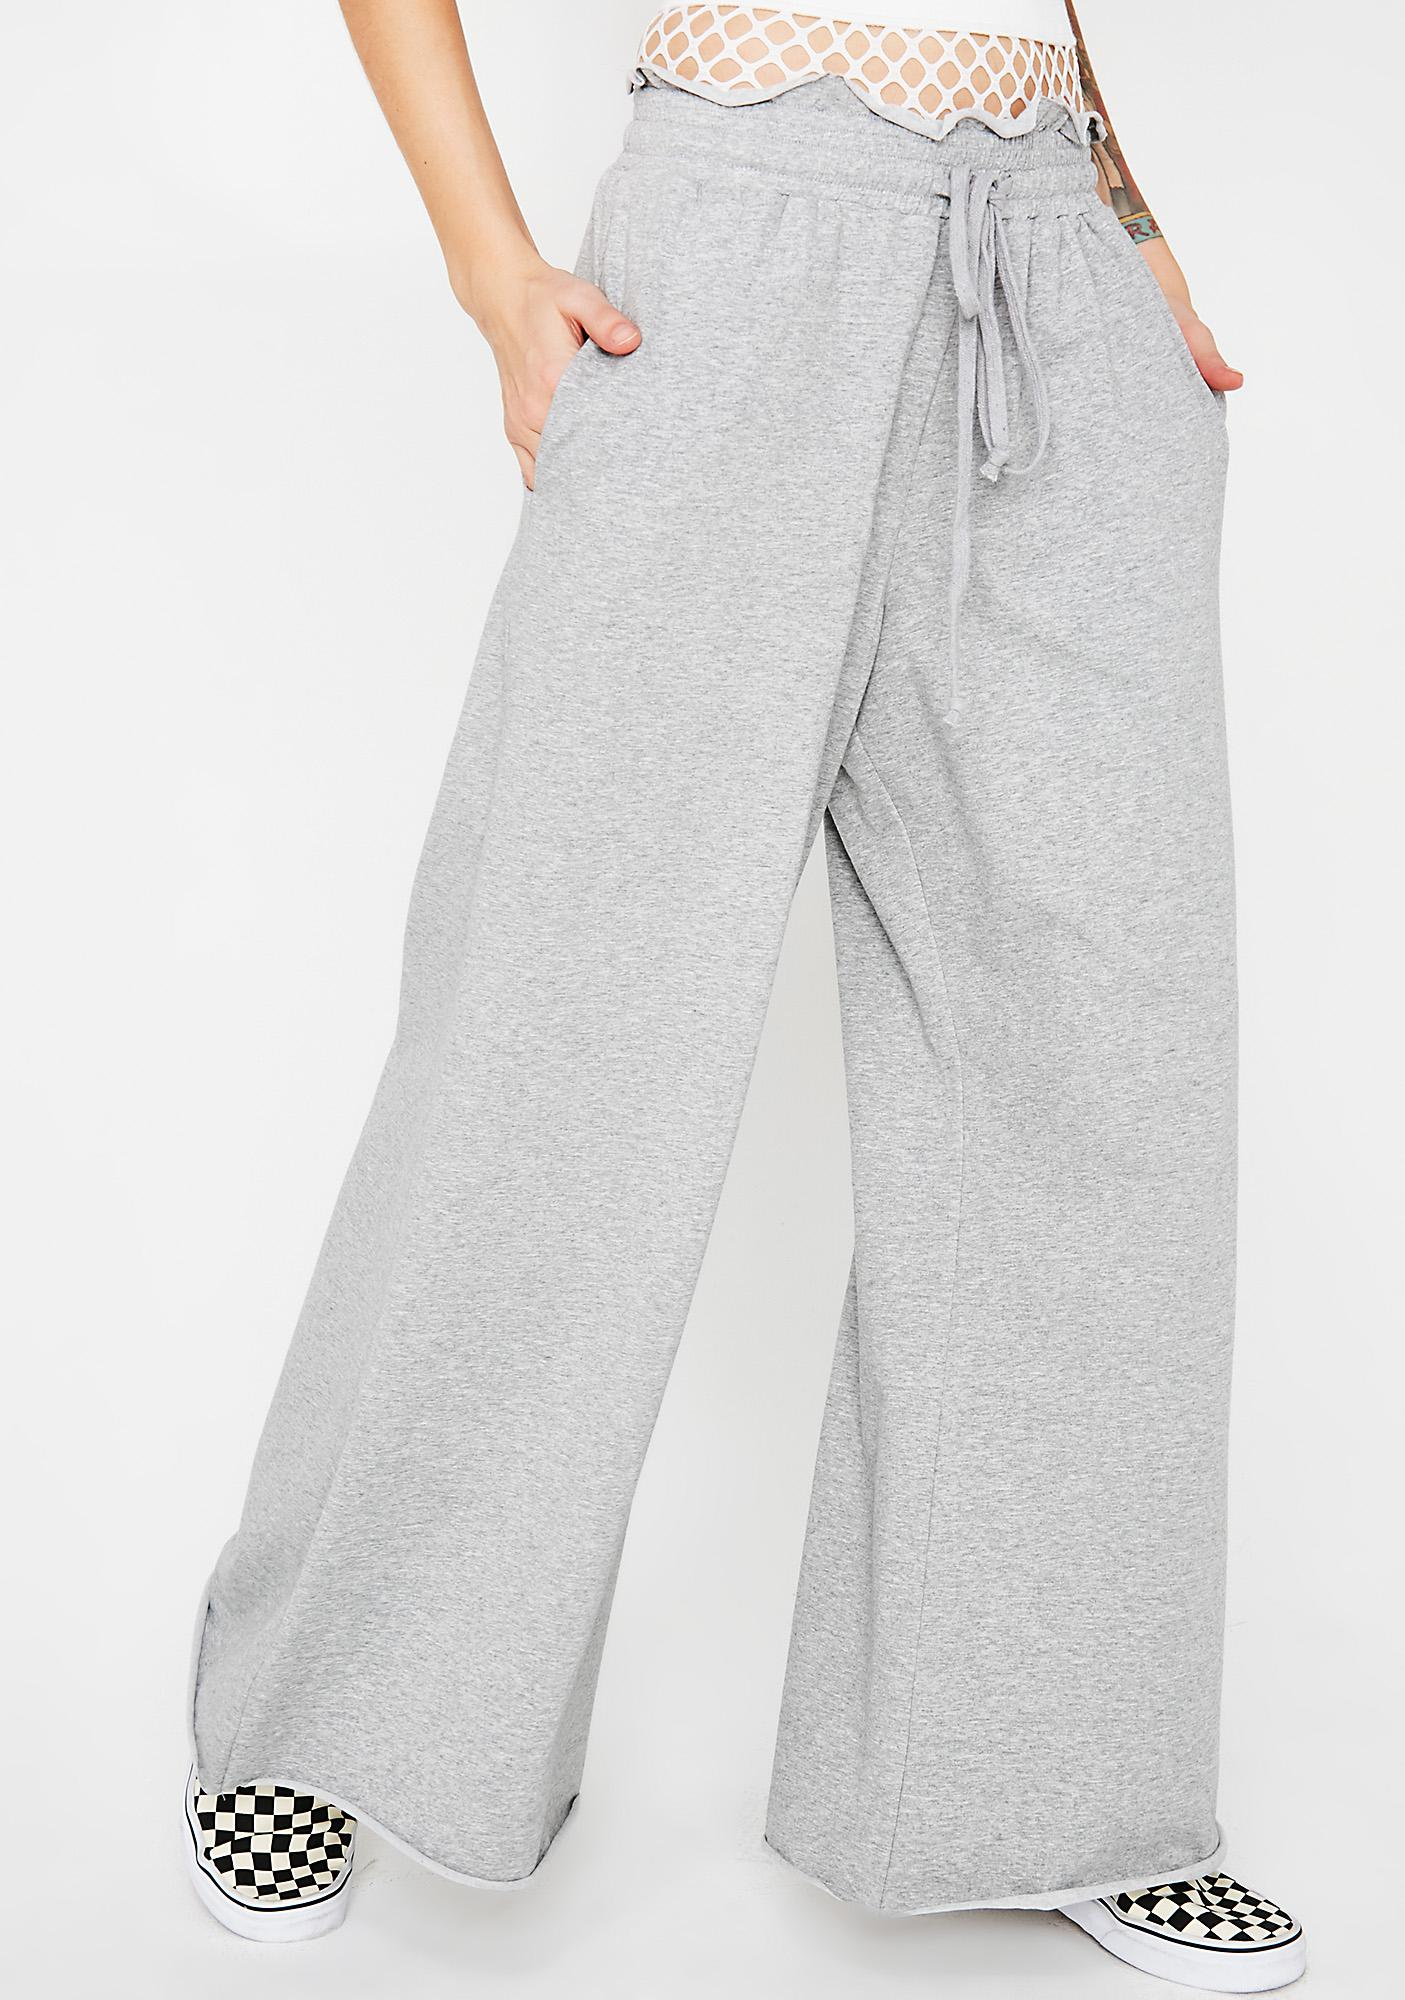 Defend Yourself Sweatpants